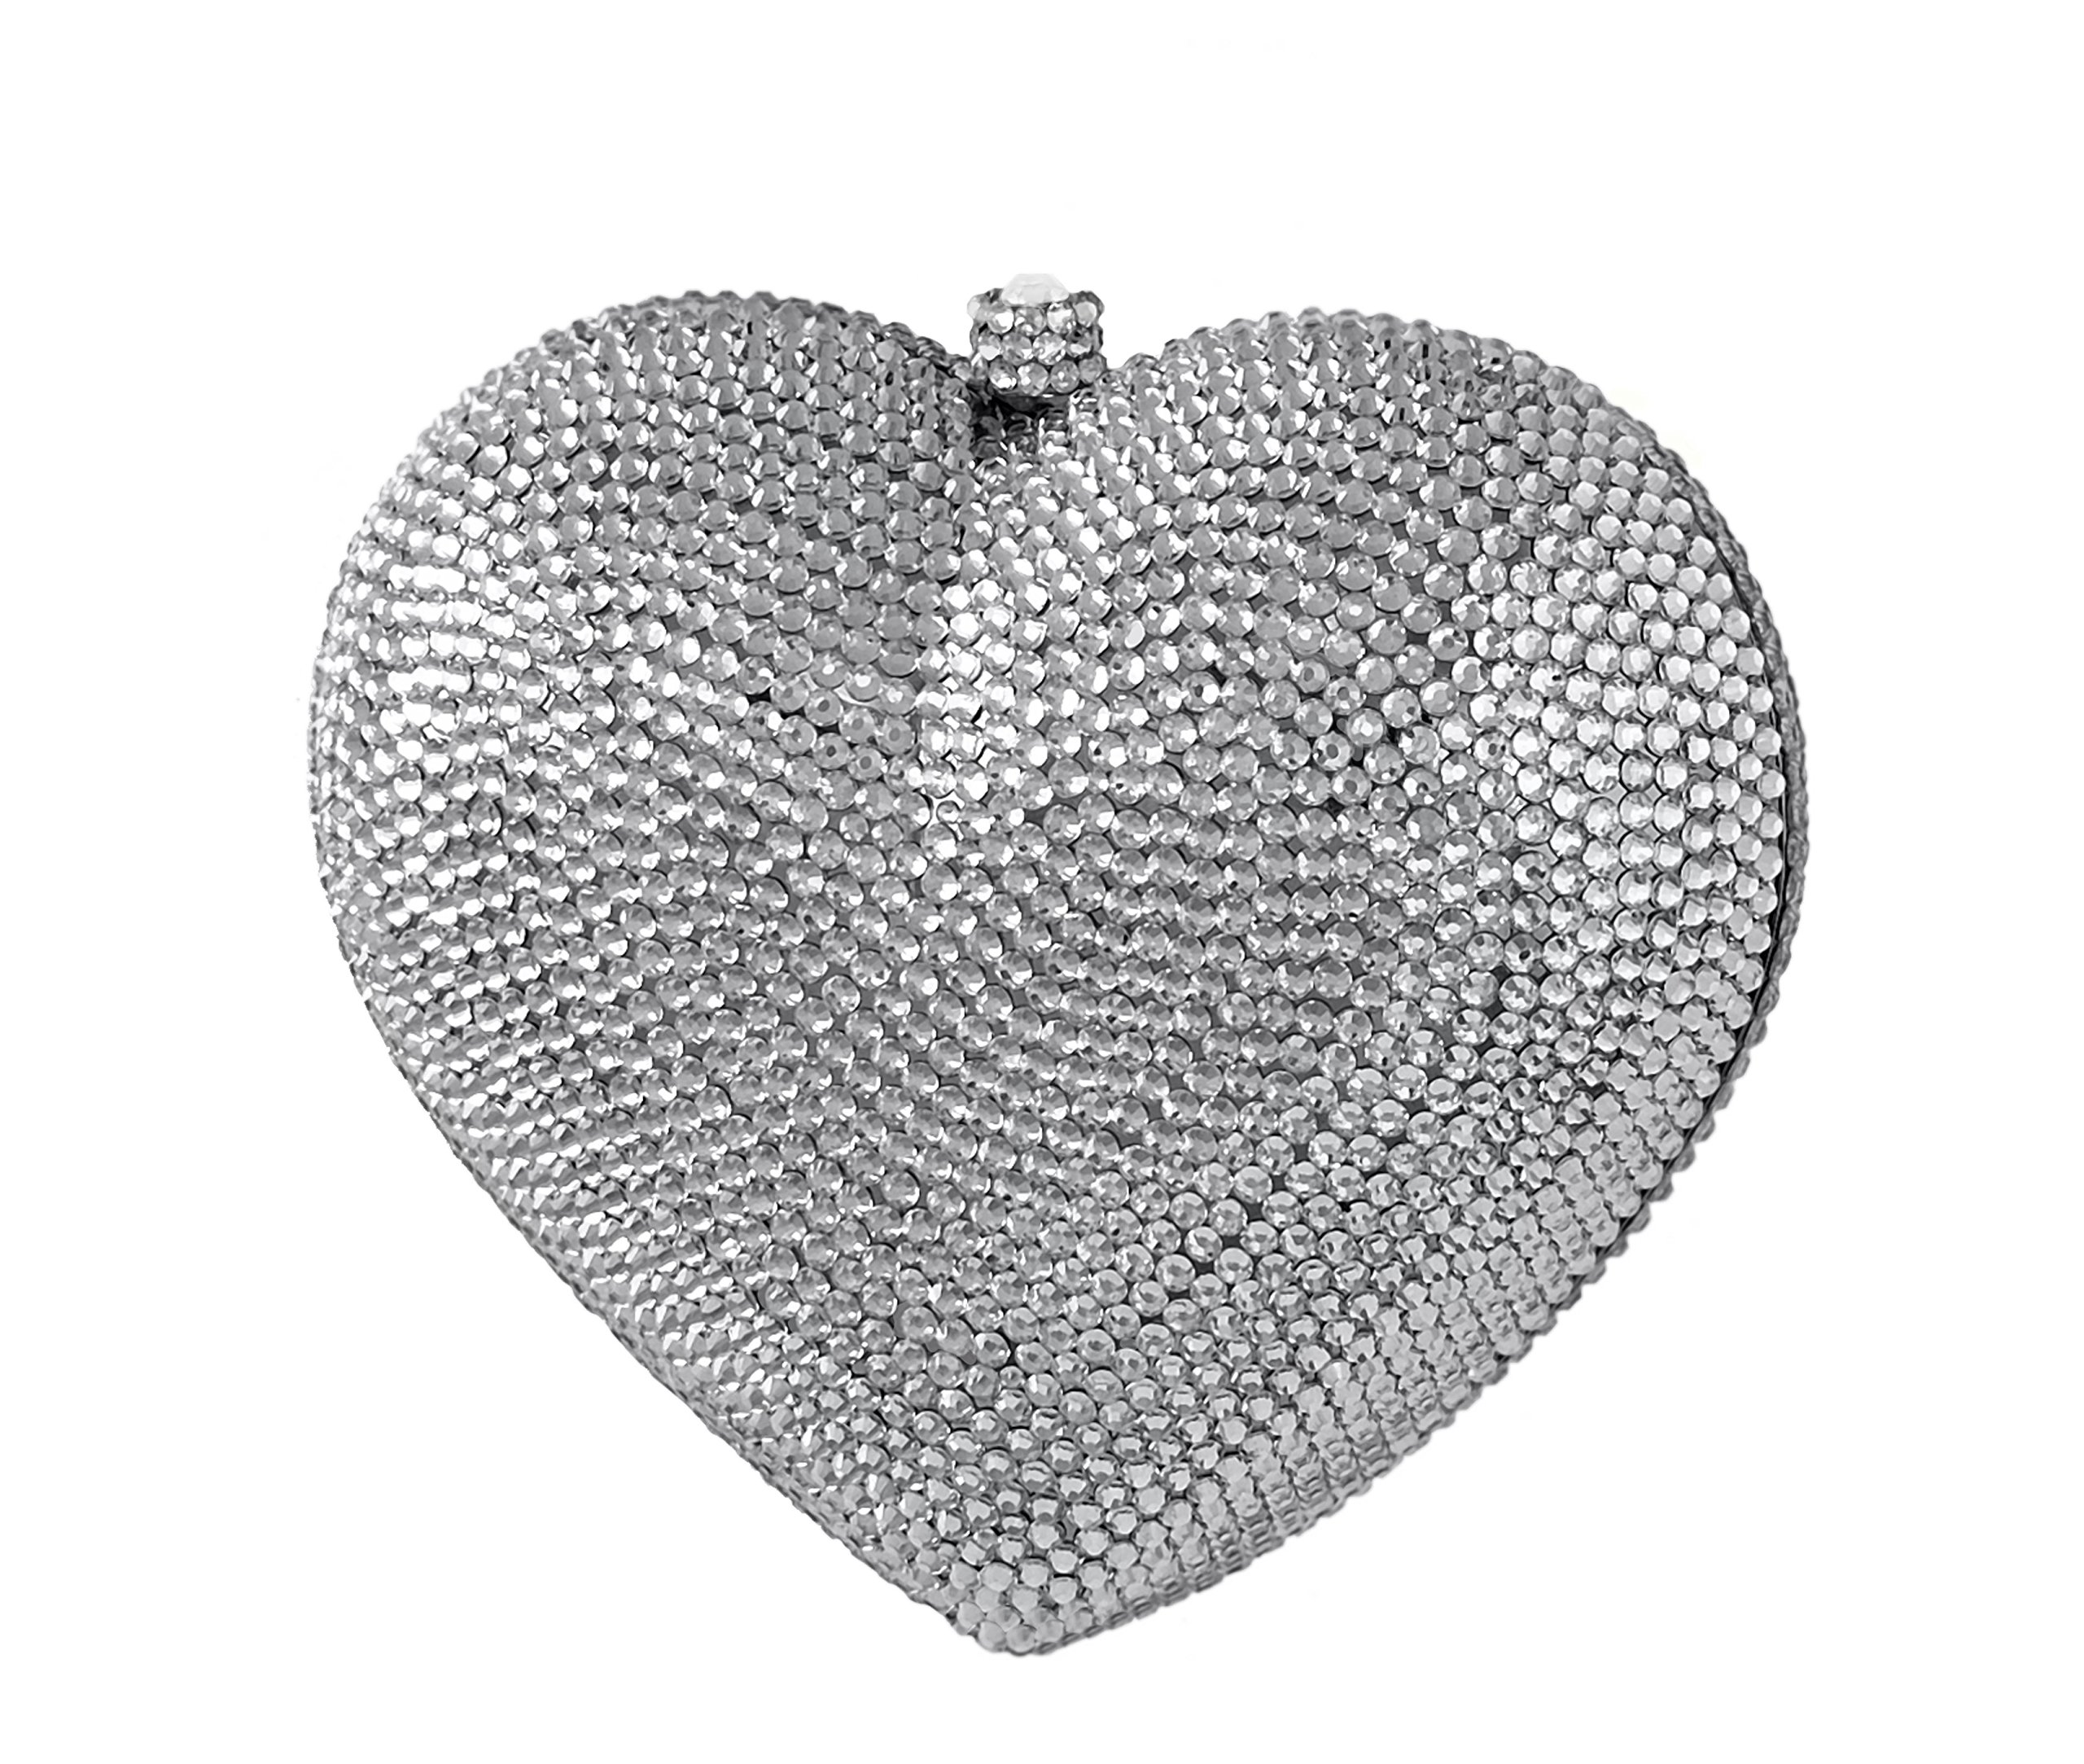 3D Heart Shaped Crystal Bridal Clutch Pave Special Occasion Evening Bag & Compact Mirror Silver